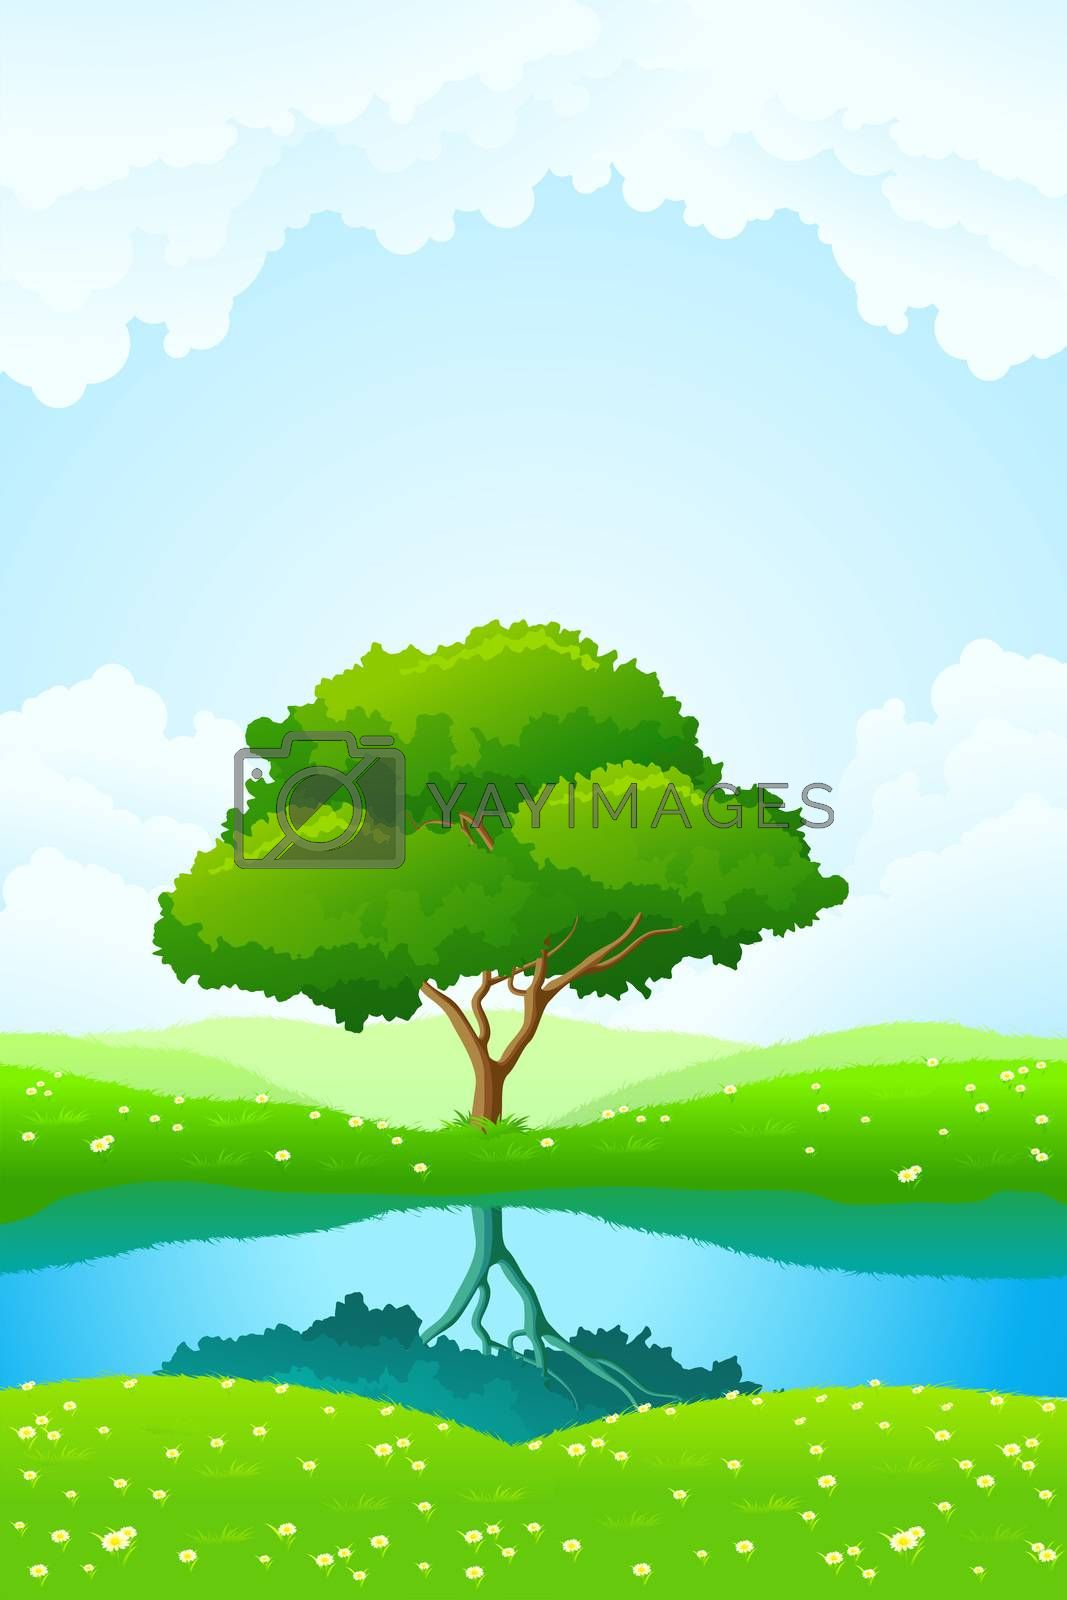 Green tree background by WaD